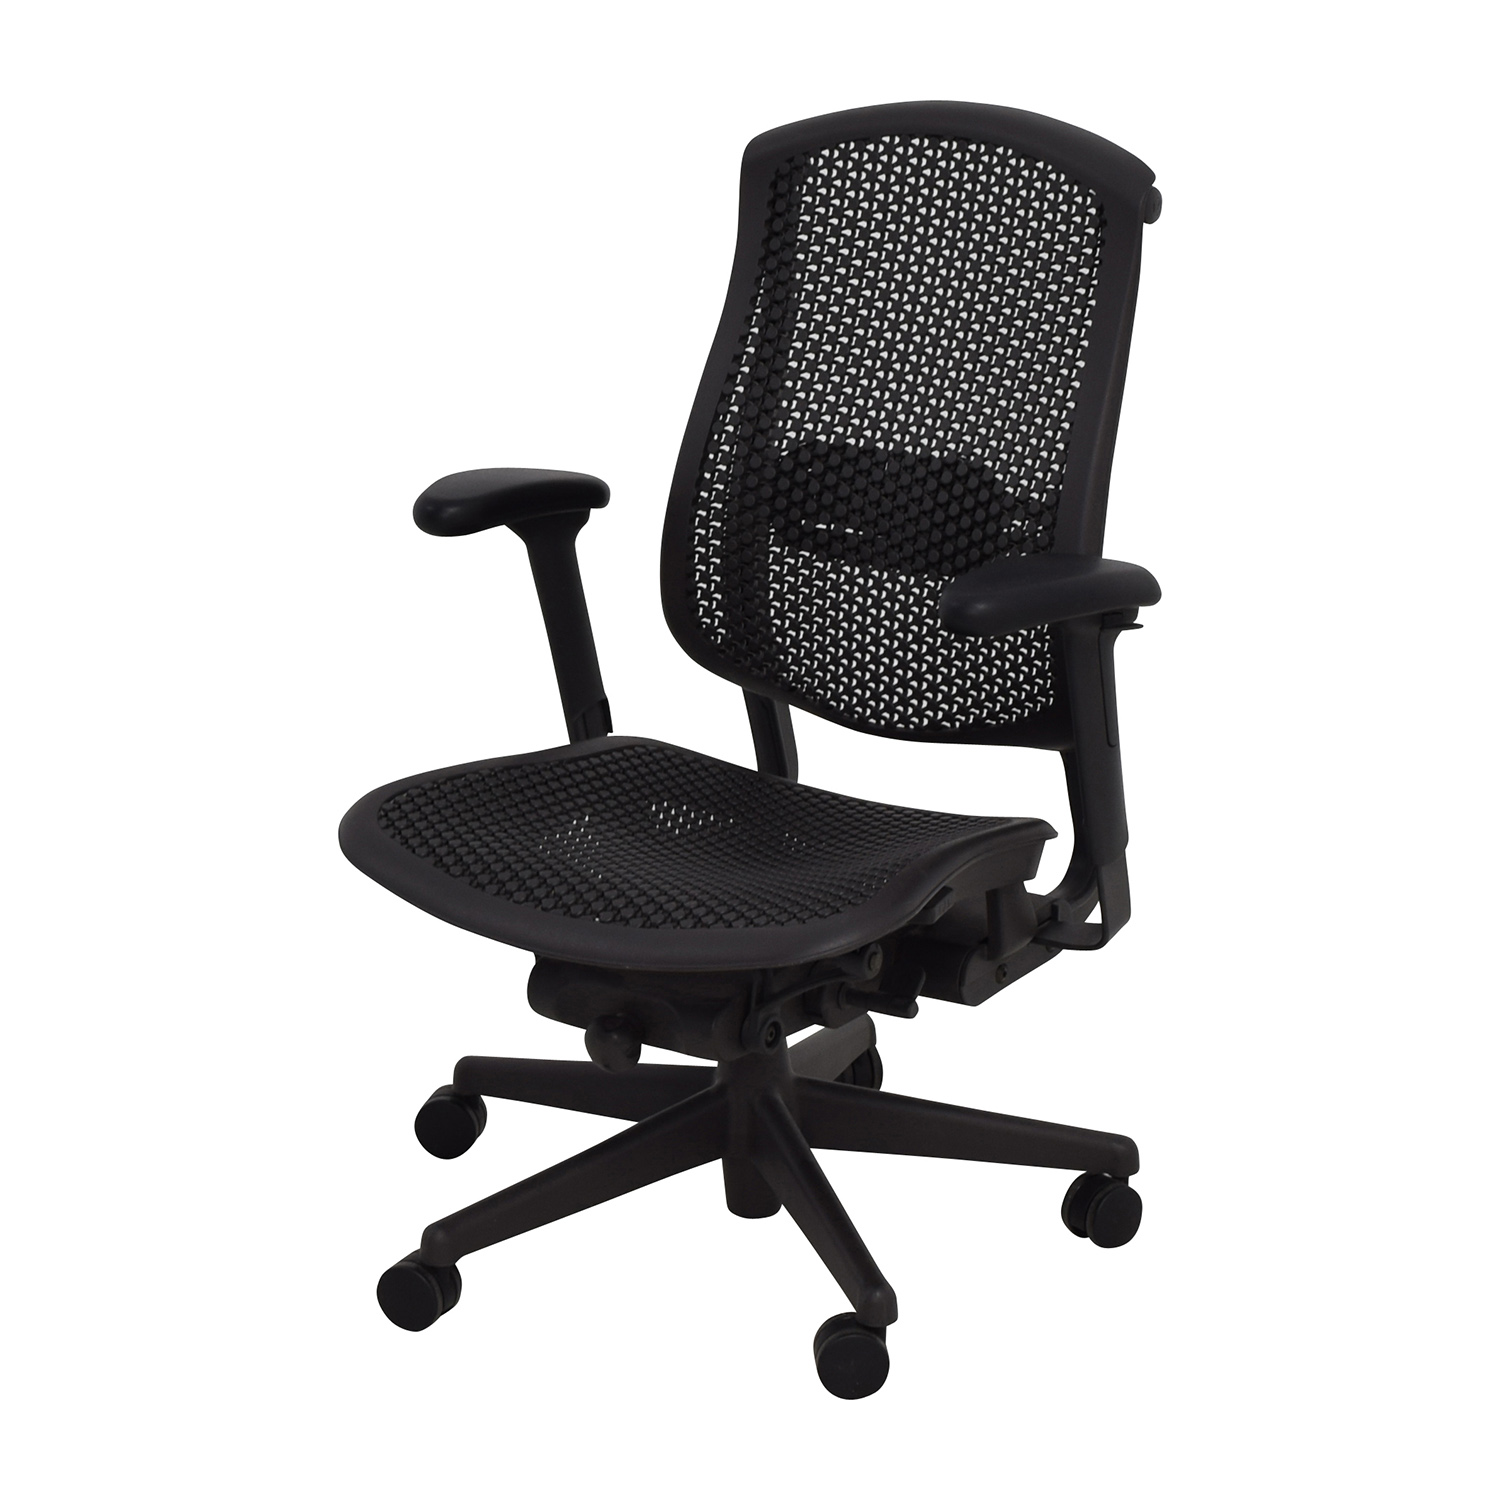 desk chair herman miller 2 chairs tattoo 52 off biomorph ergonomic